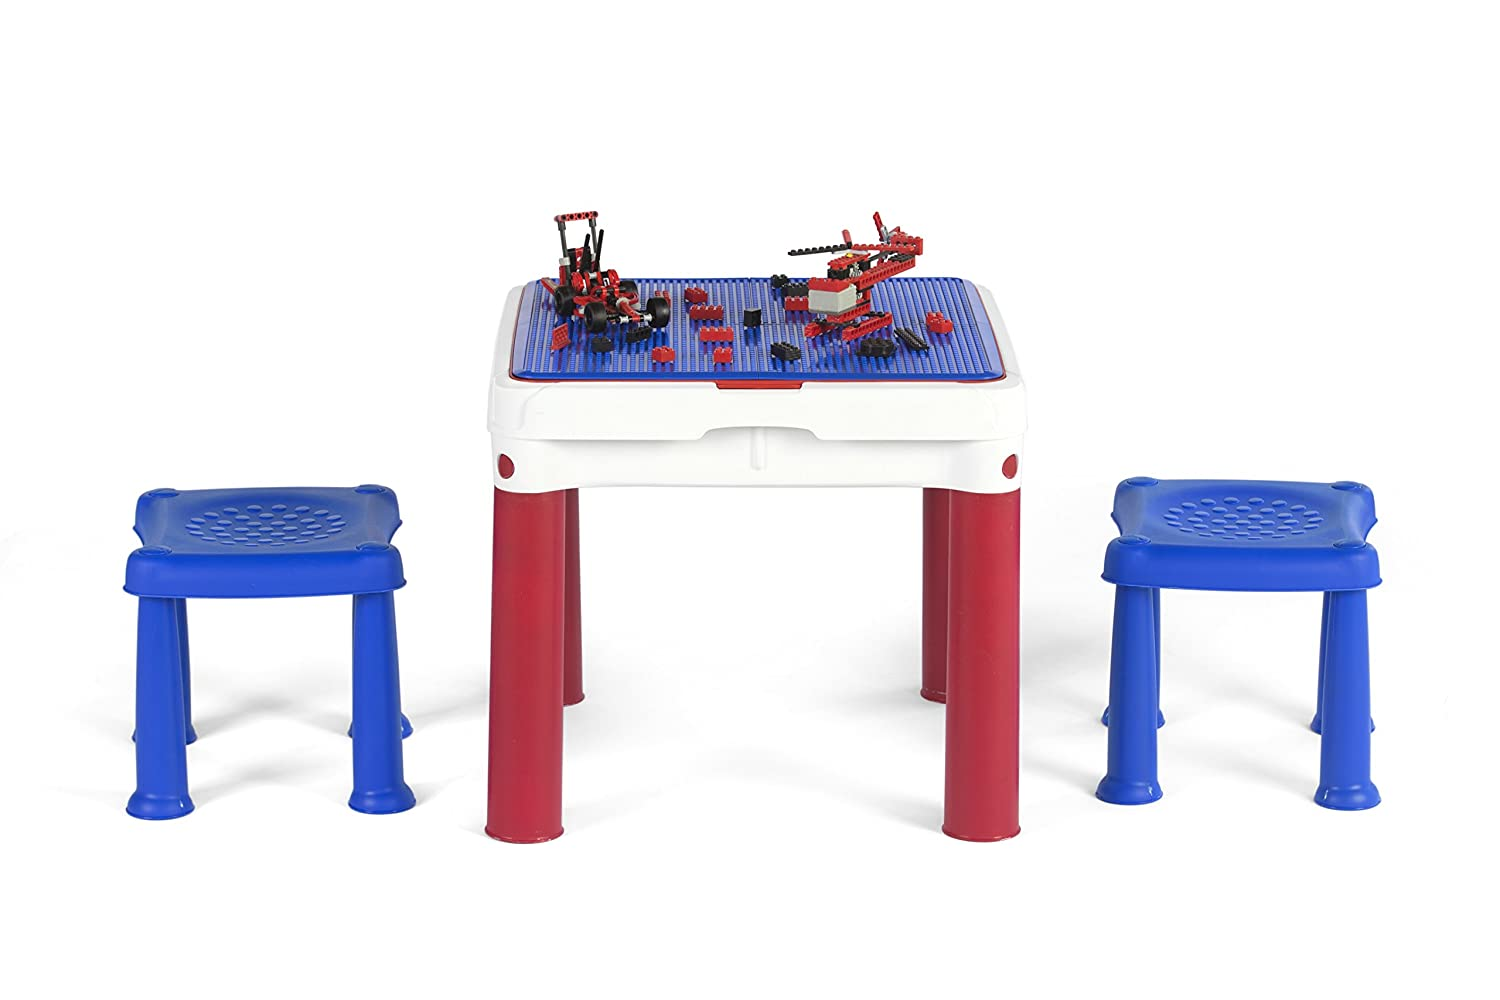 Keter 51 x 51 x 44 cm Constructable Indoor/Outdoor Children's Play and Store Activity Table with Two Stools - Blue/White/Red 17201603